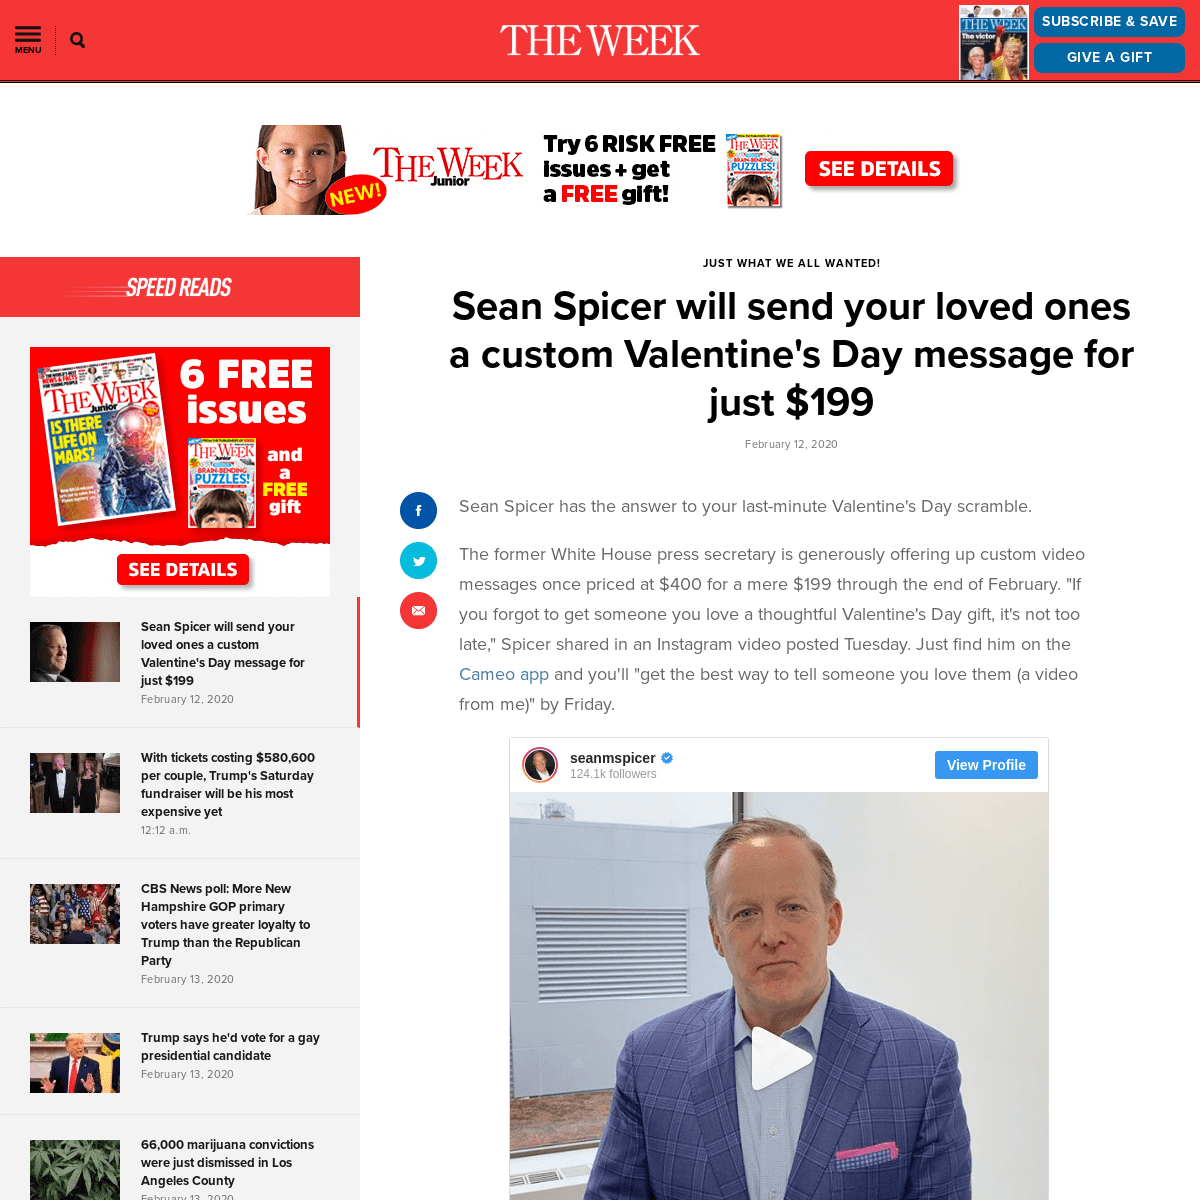 Sean Spicer will send your loved ones a custom Valentine's Day message for just $199